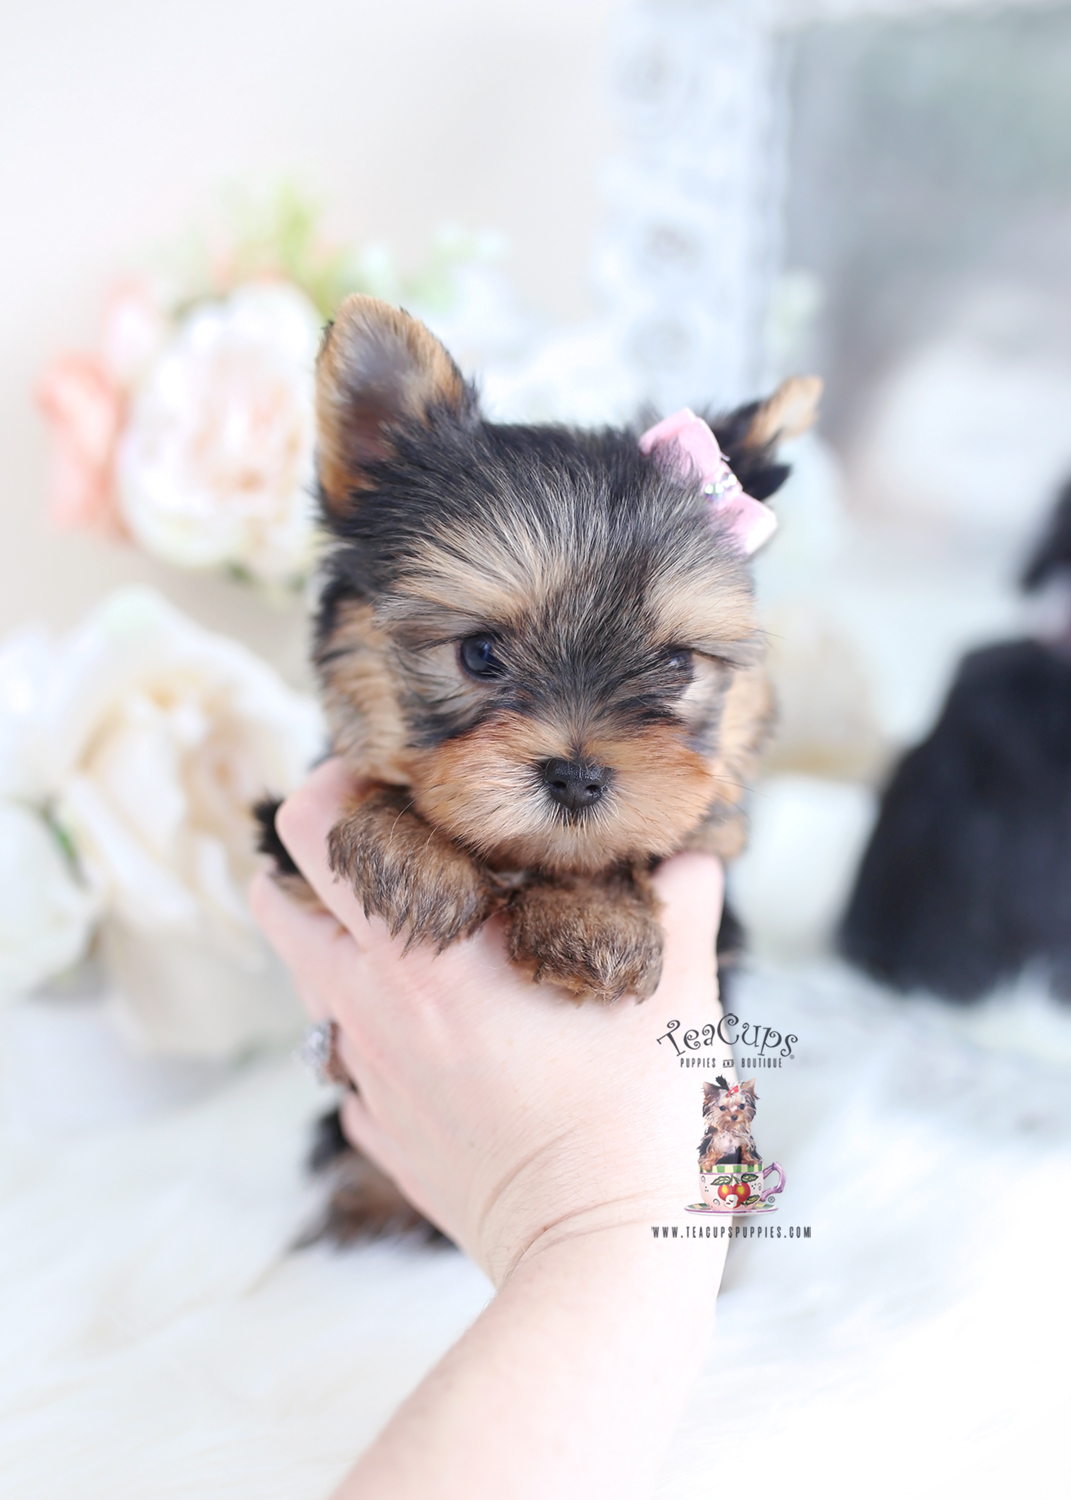 Beautiful Yorkie Puppies For Sale